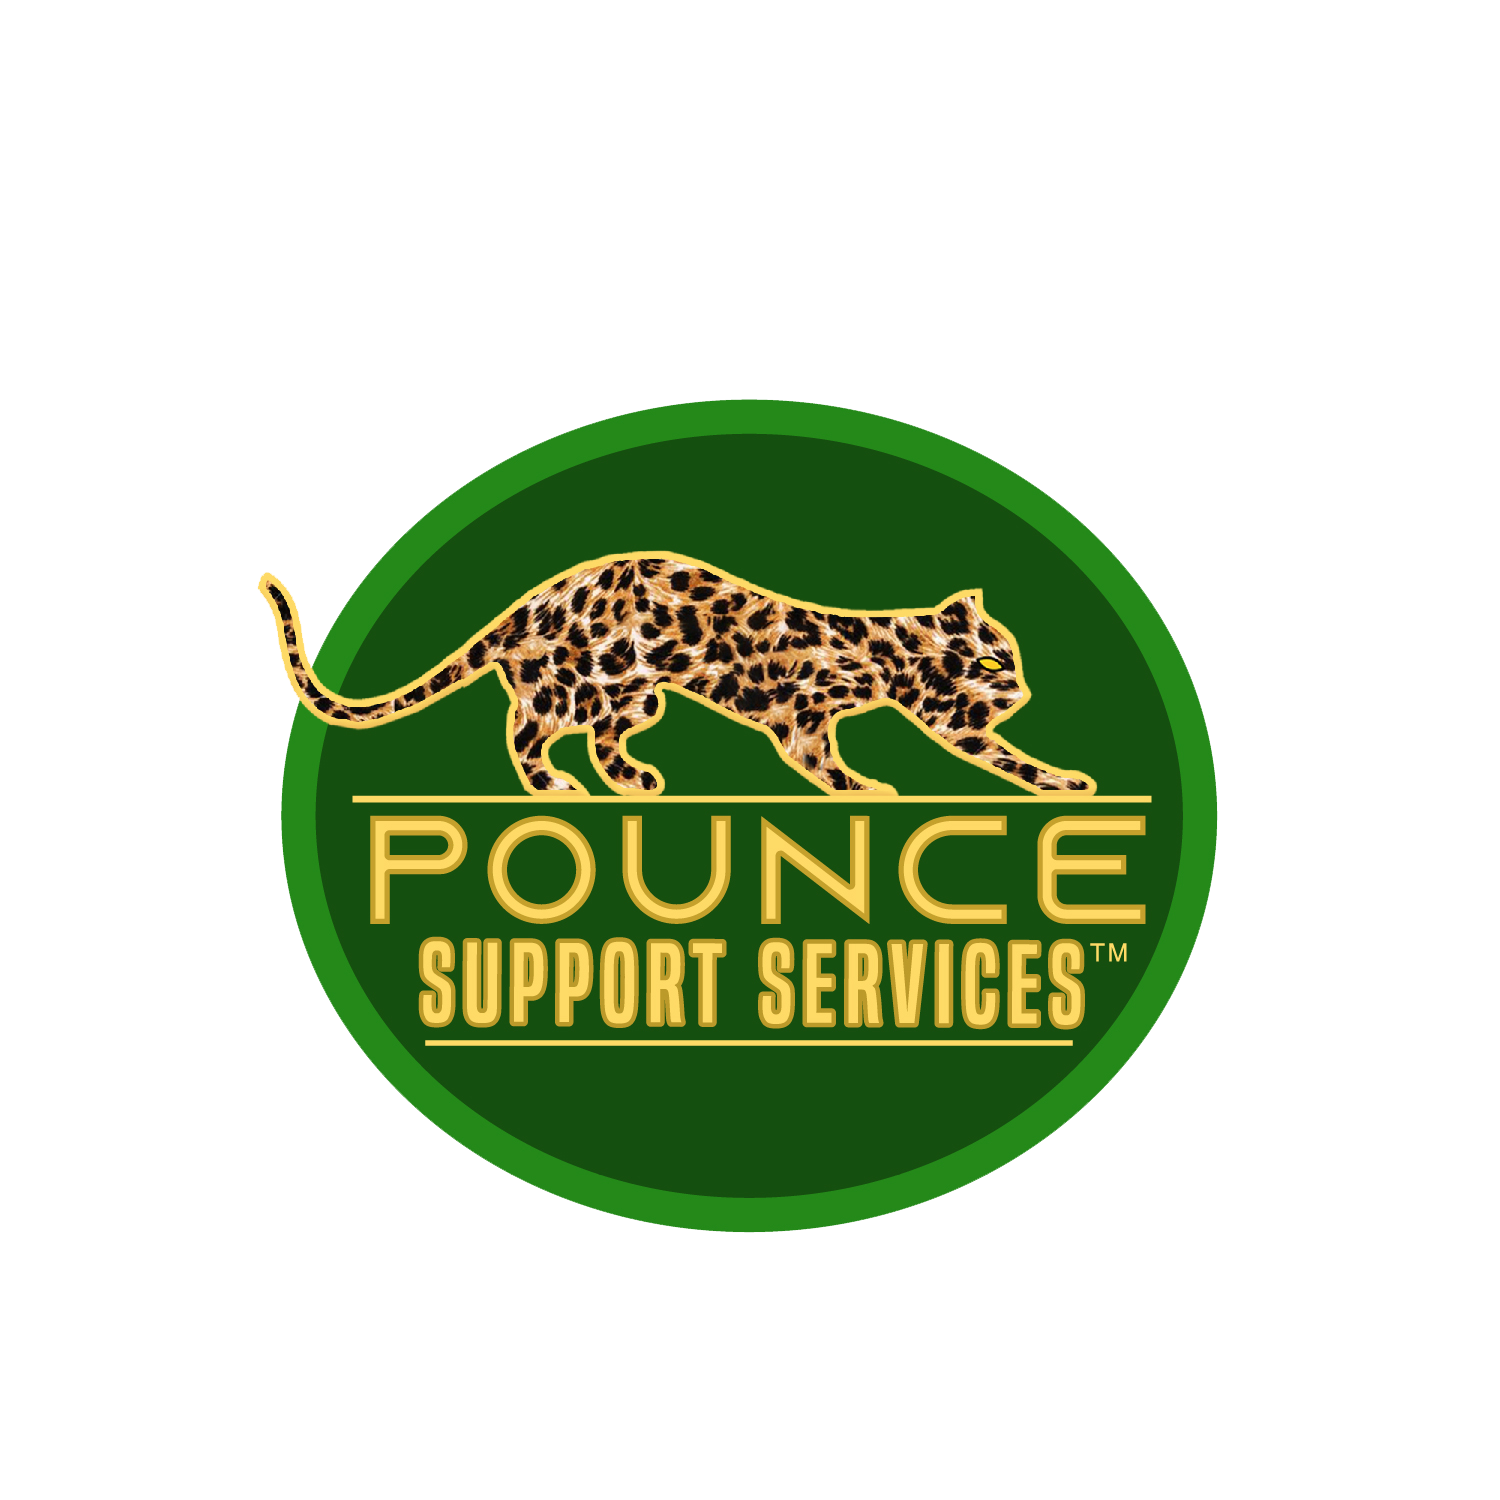 Pounce Support Services